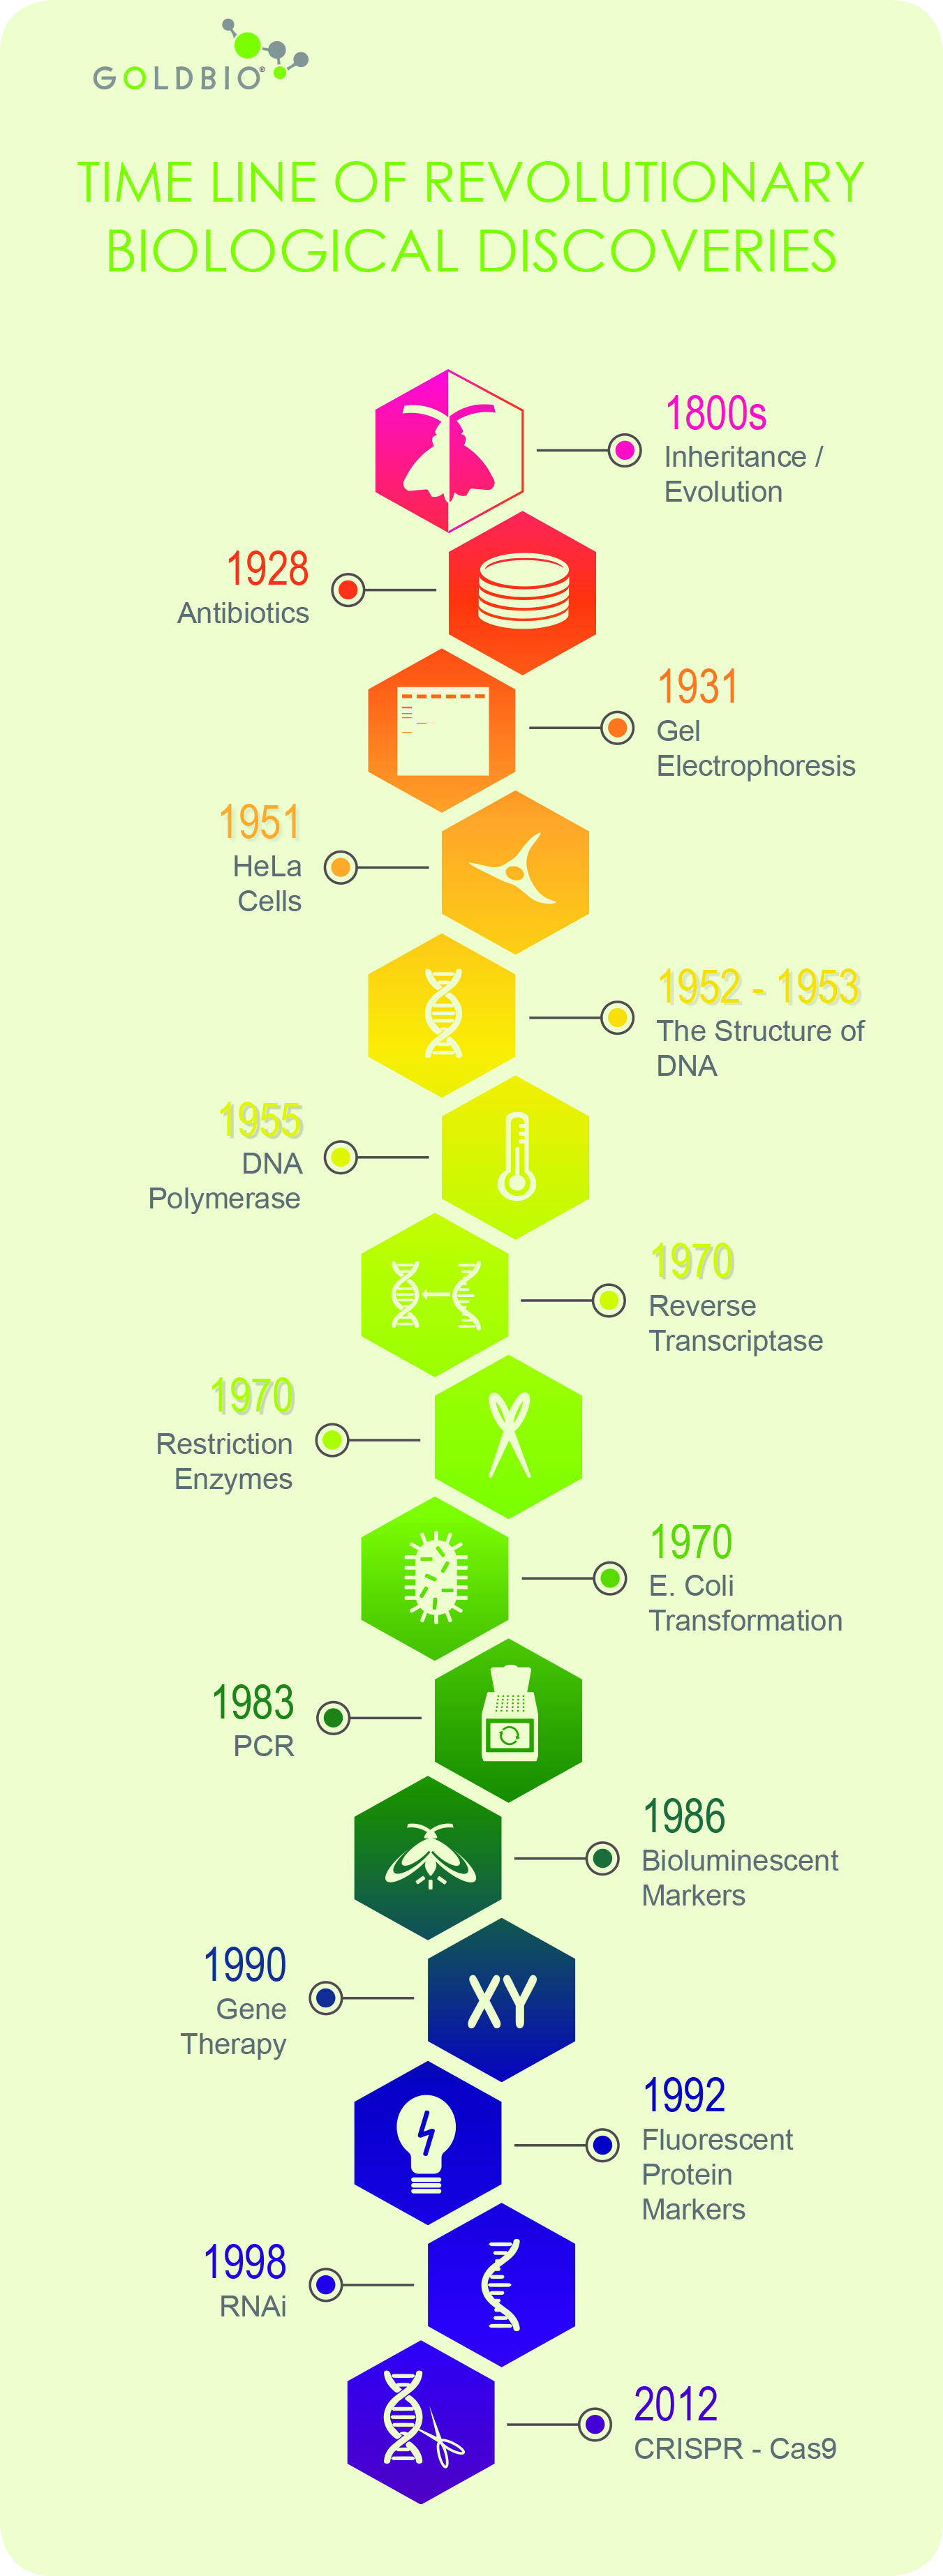 15 Great biological discoveries that revolutionized life science, Inheritance, Evolution, Antibiotics, Gel Electrophoresis, HeLa Cells, DNA, DNA Polymerase, Reverse transcriptase, Restriction enzymes, E. coli transformation, PCR, Bioluminescent markers, Gene Therapy, Fluorescent protein markers, RNAi, CRISPR-Cas9